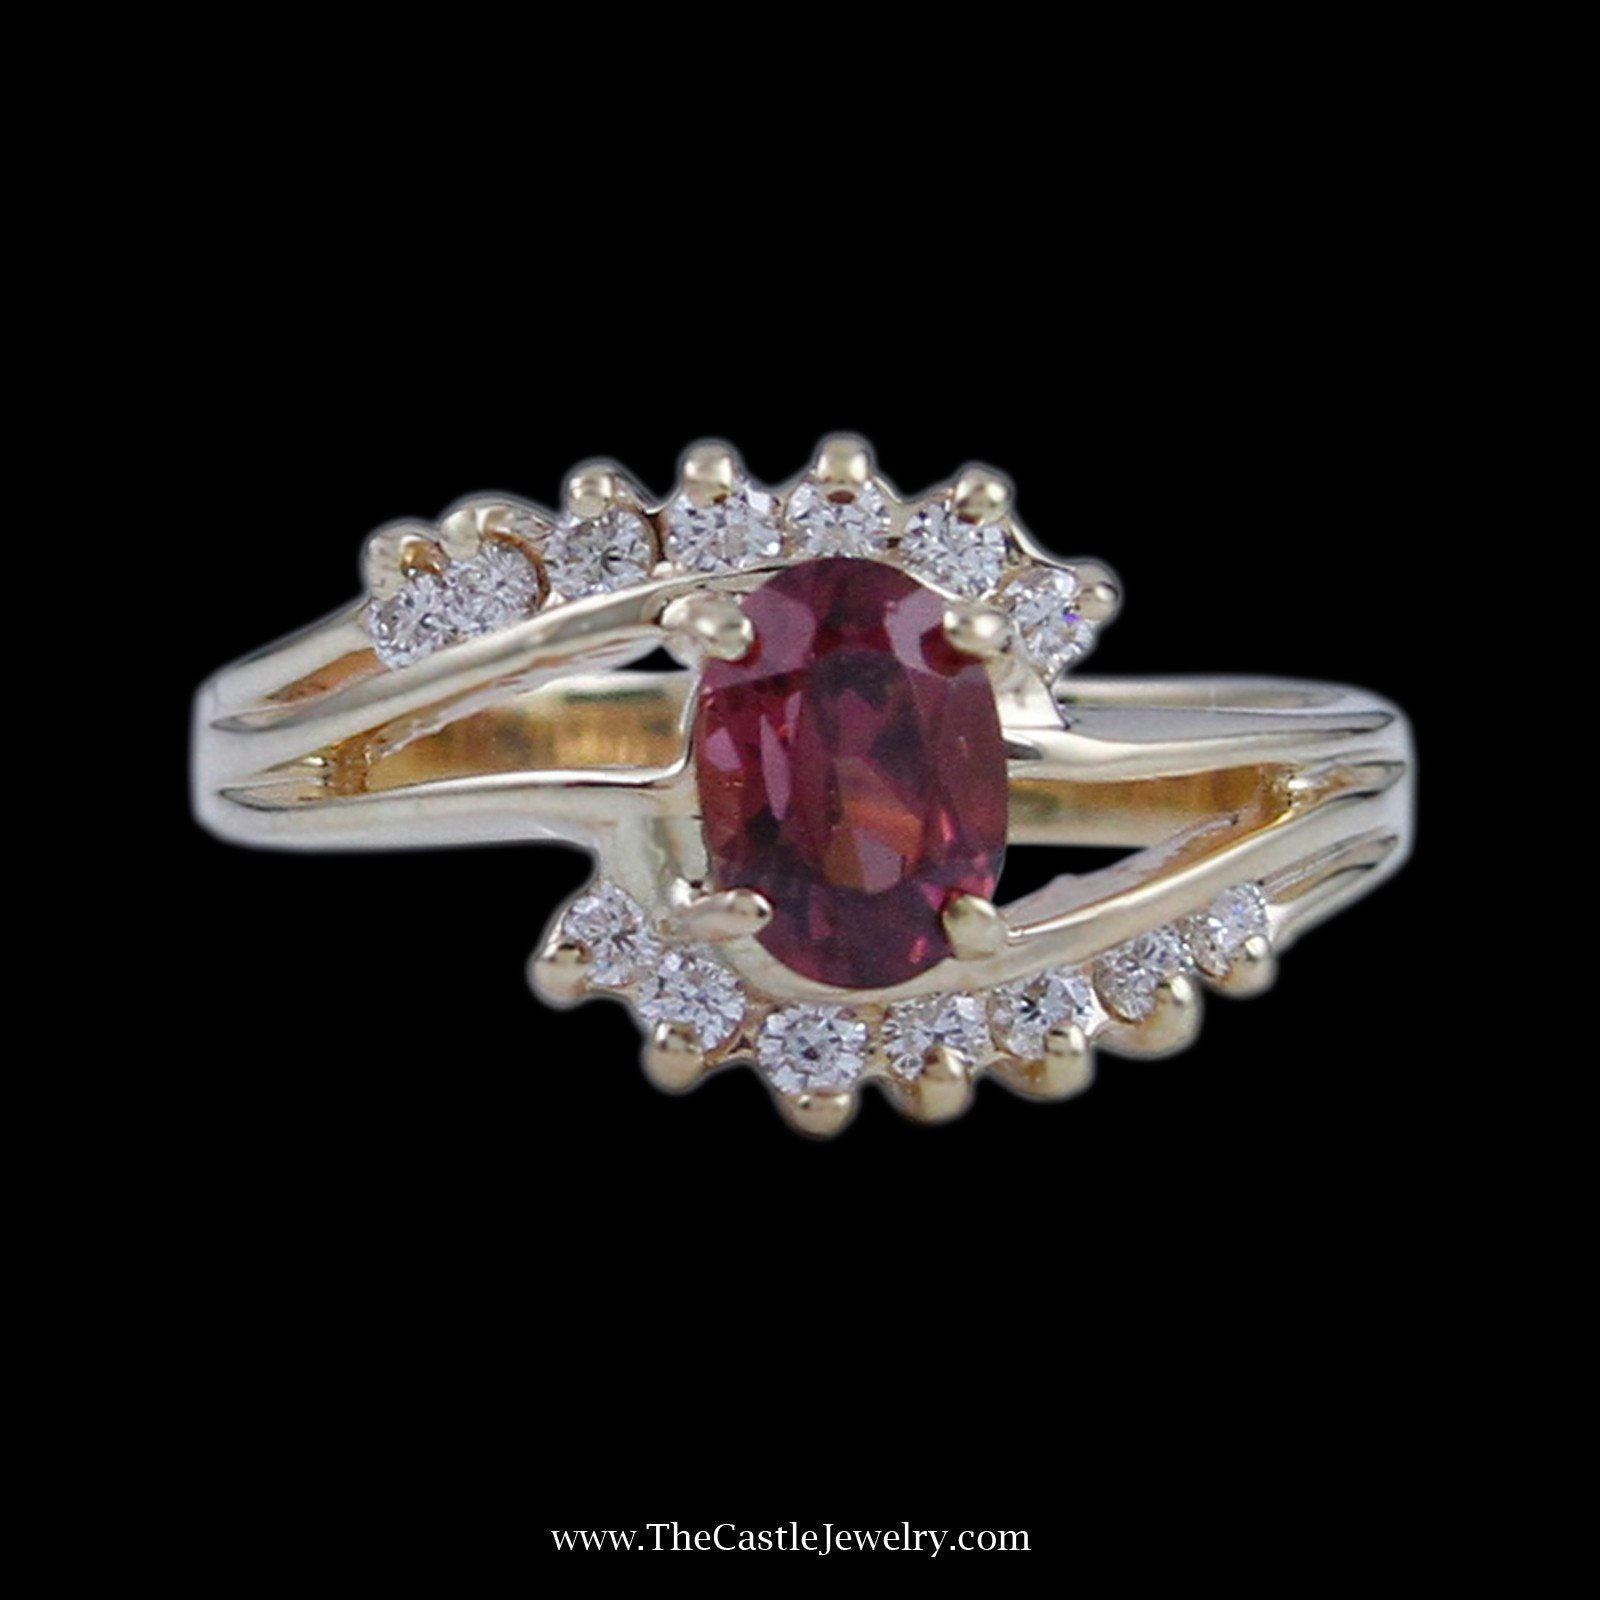 Gorgeous Oval Rhodolite Garnet Center with Prong Set Diamonds in Bypass Mounting